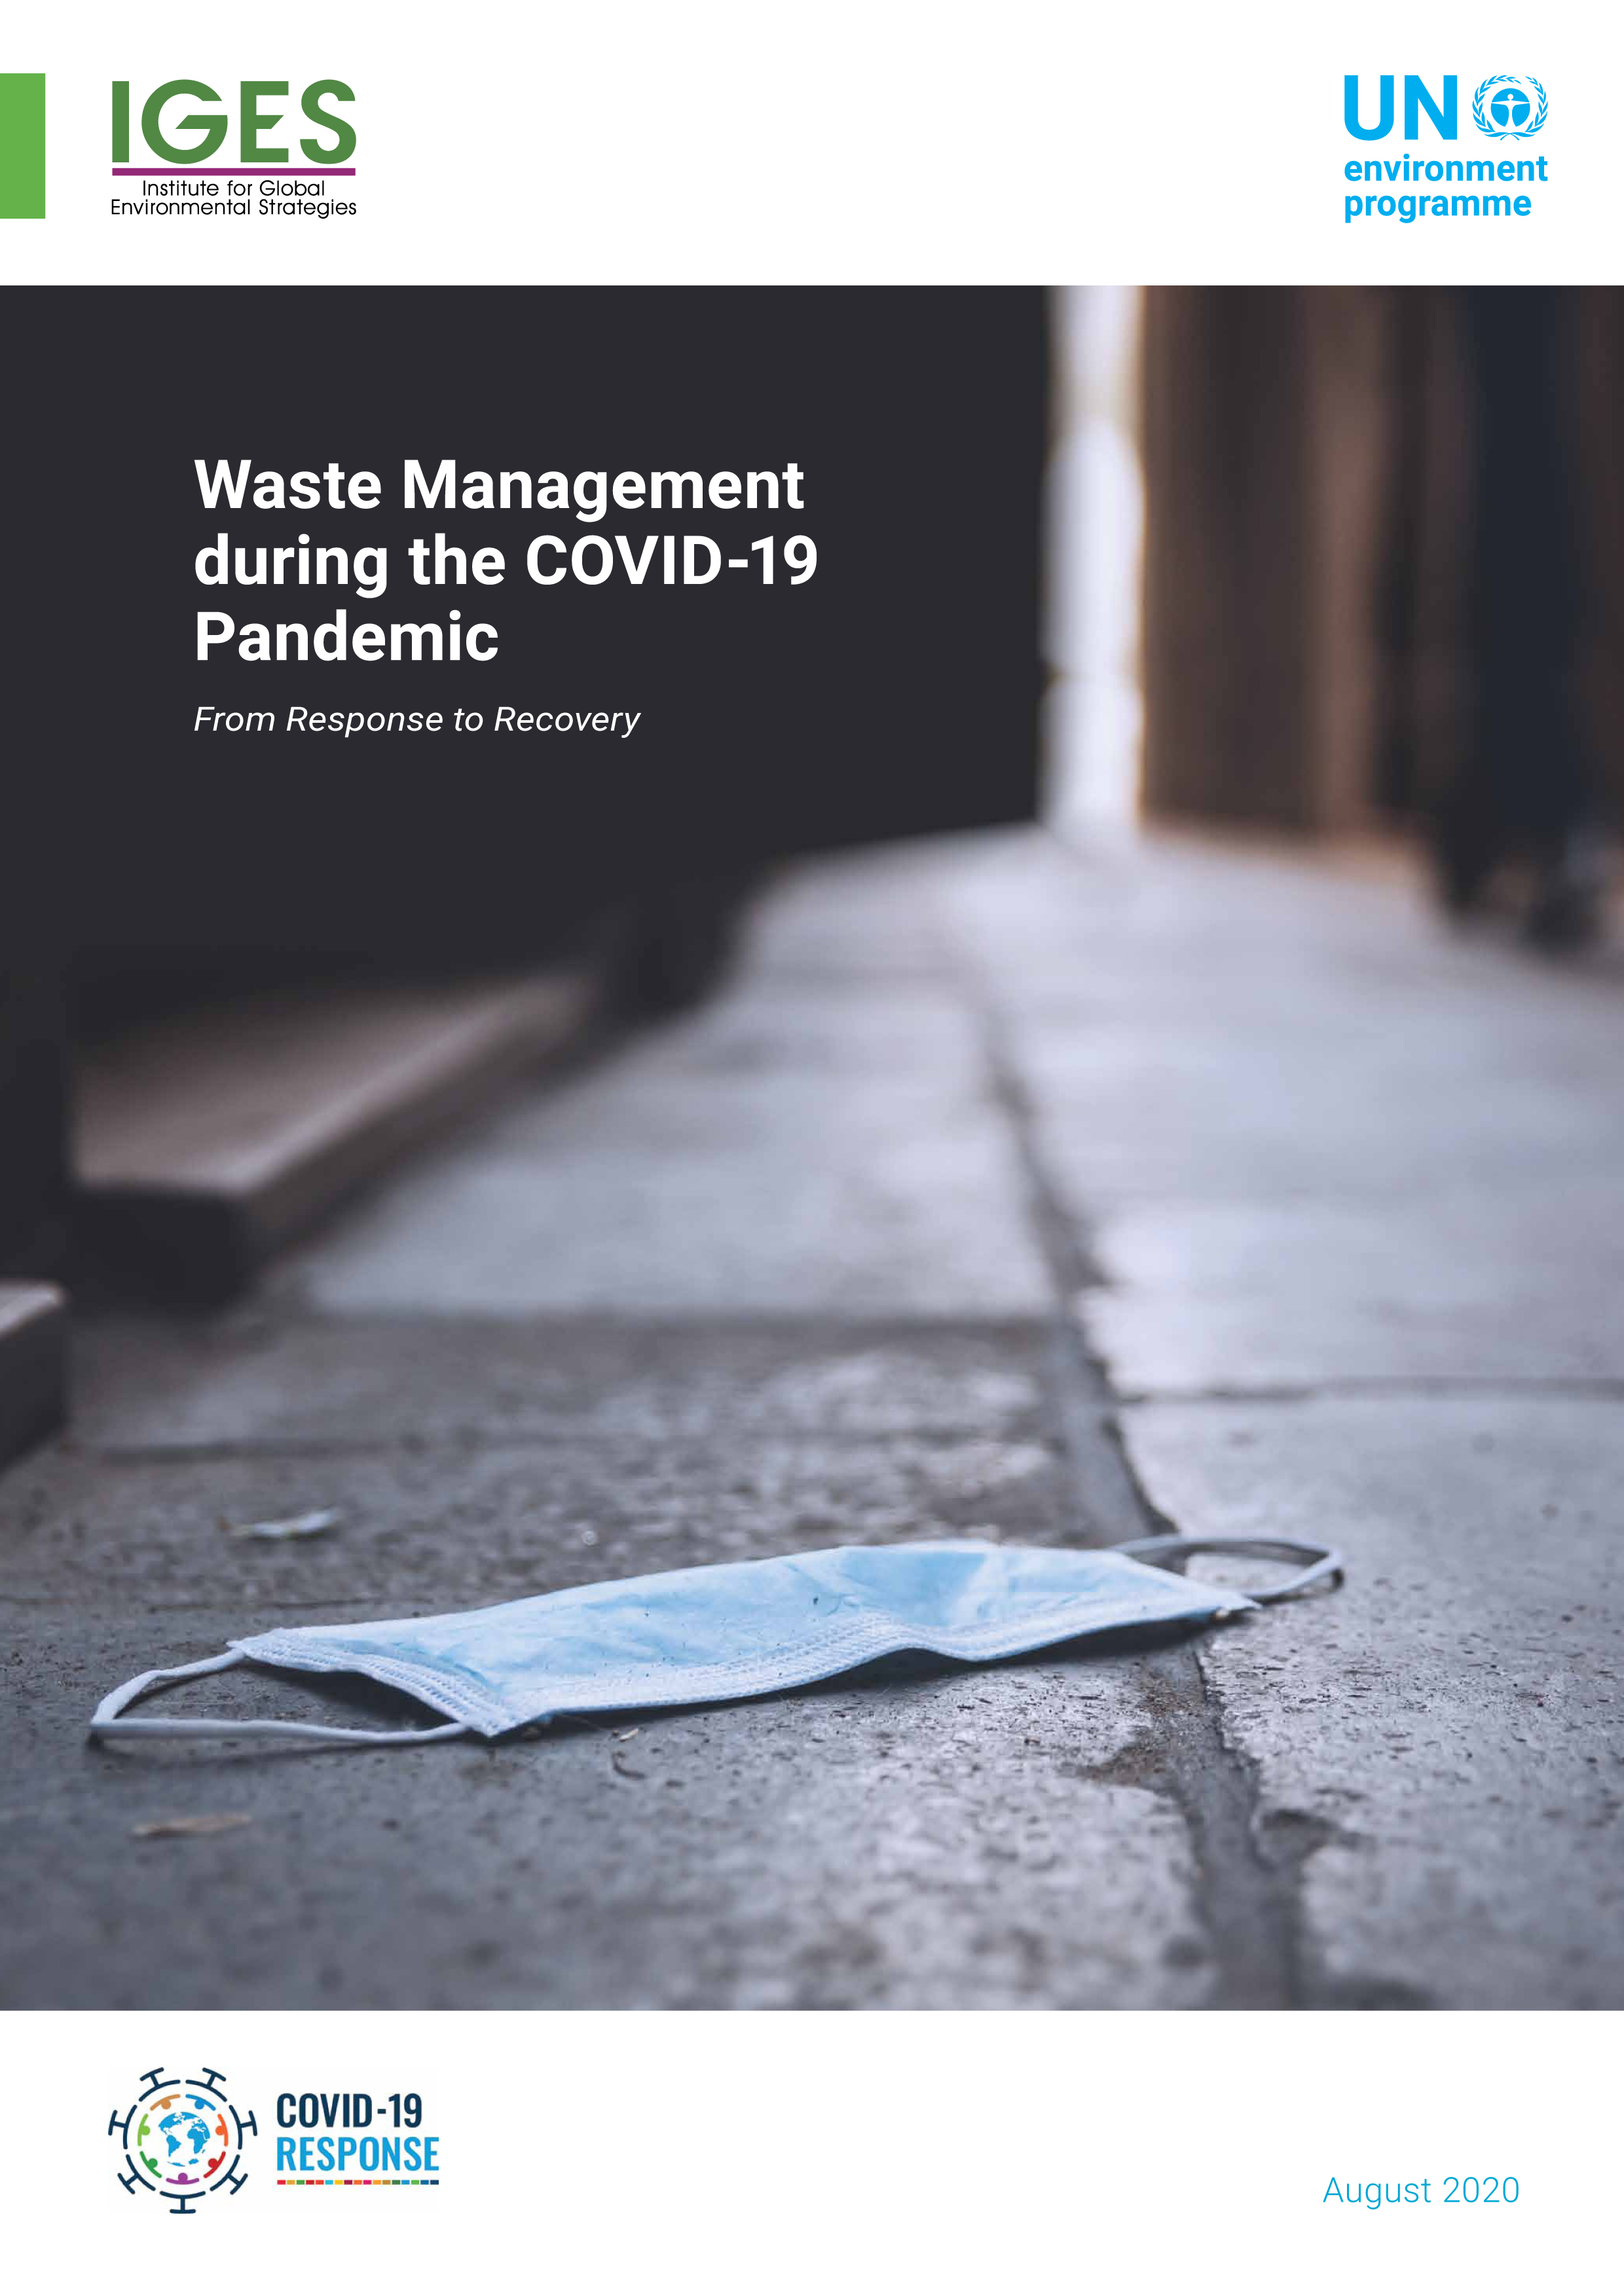 WASTE MANAGEMENT DURING COVID-19